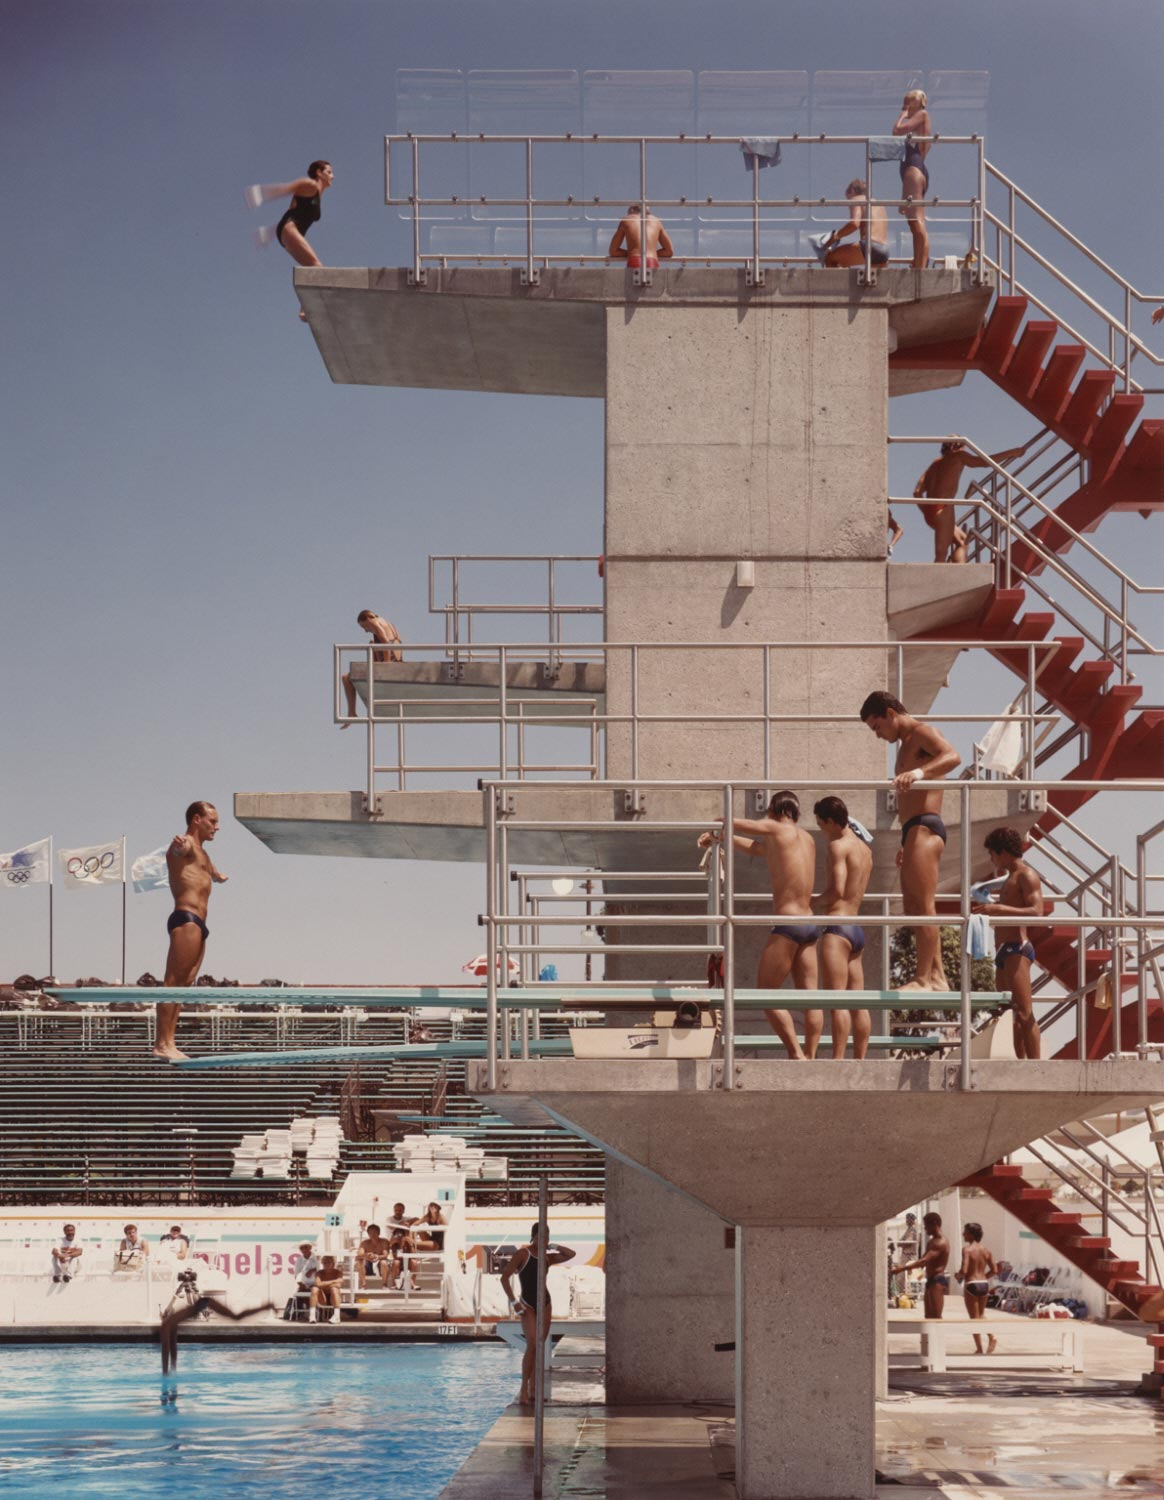 Olympic Diving Practice